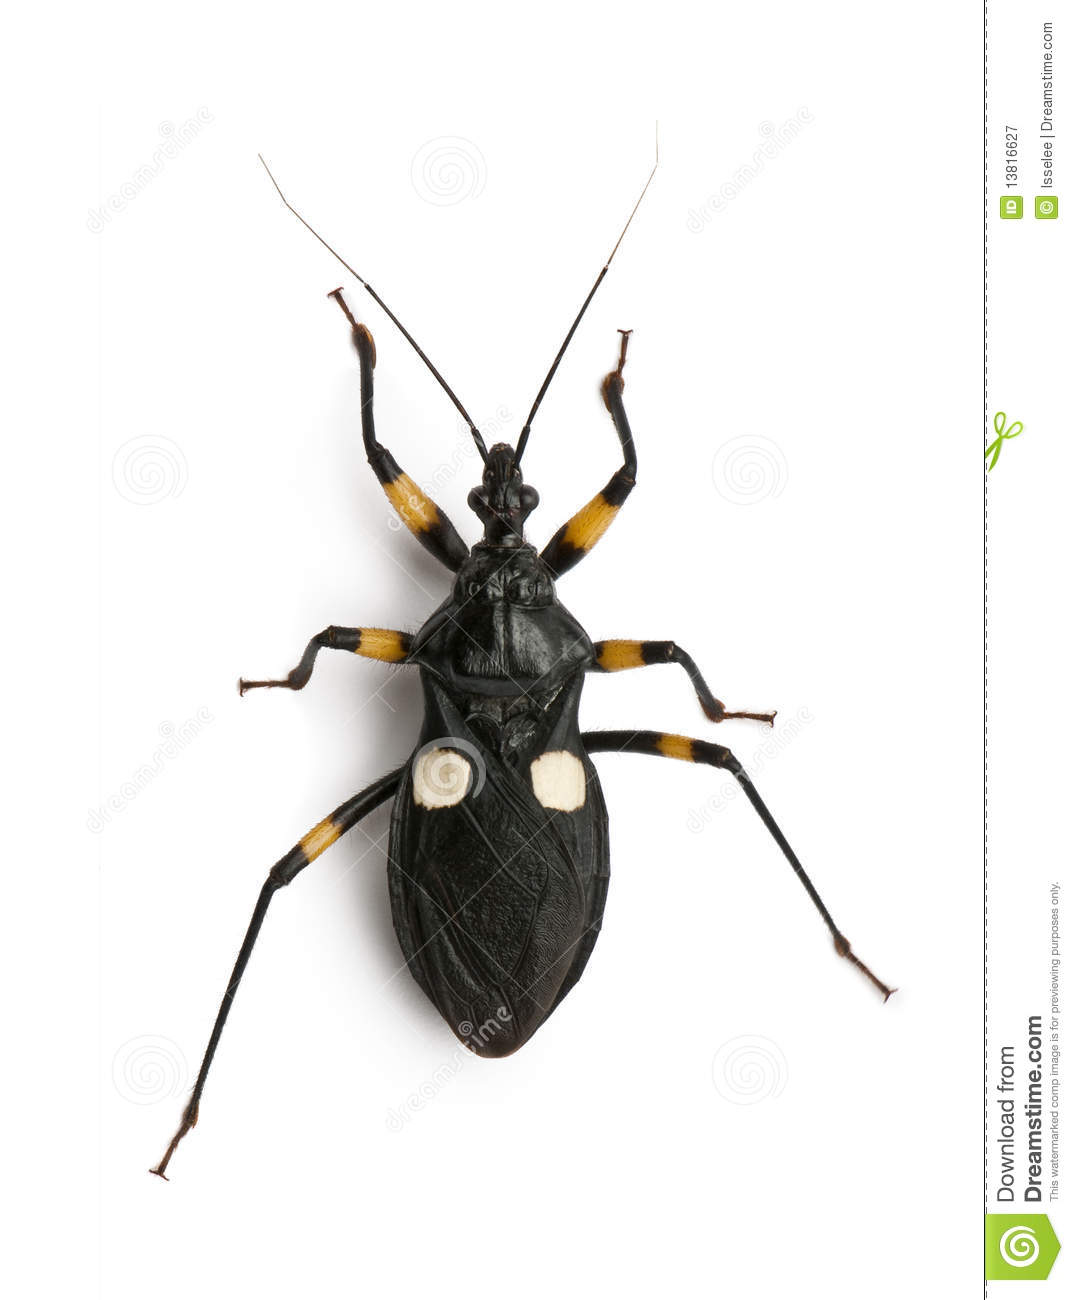 Platymeris Biguttatus Is A Genus Of Assassin Bug Royalty Free.